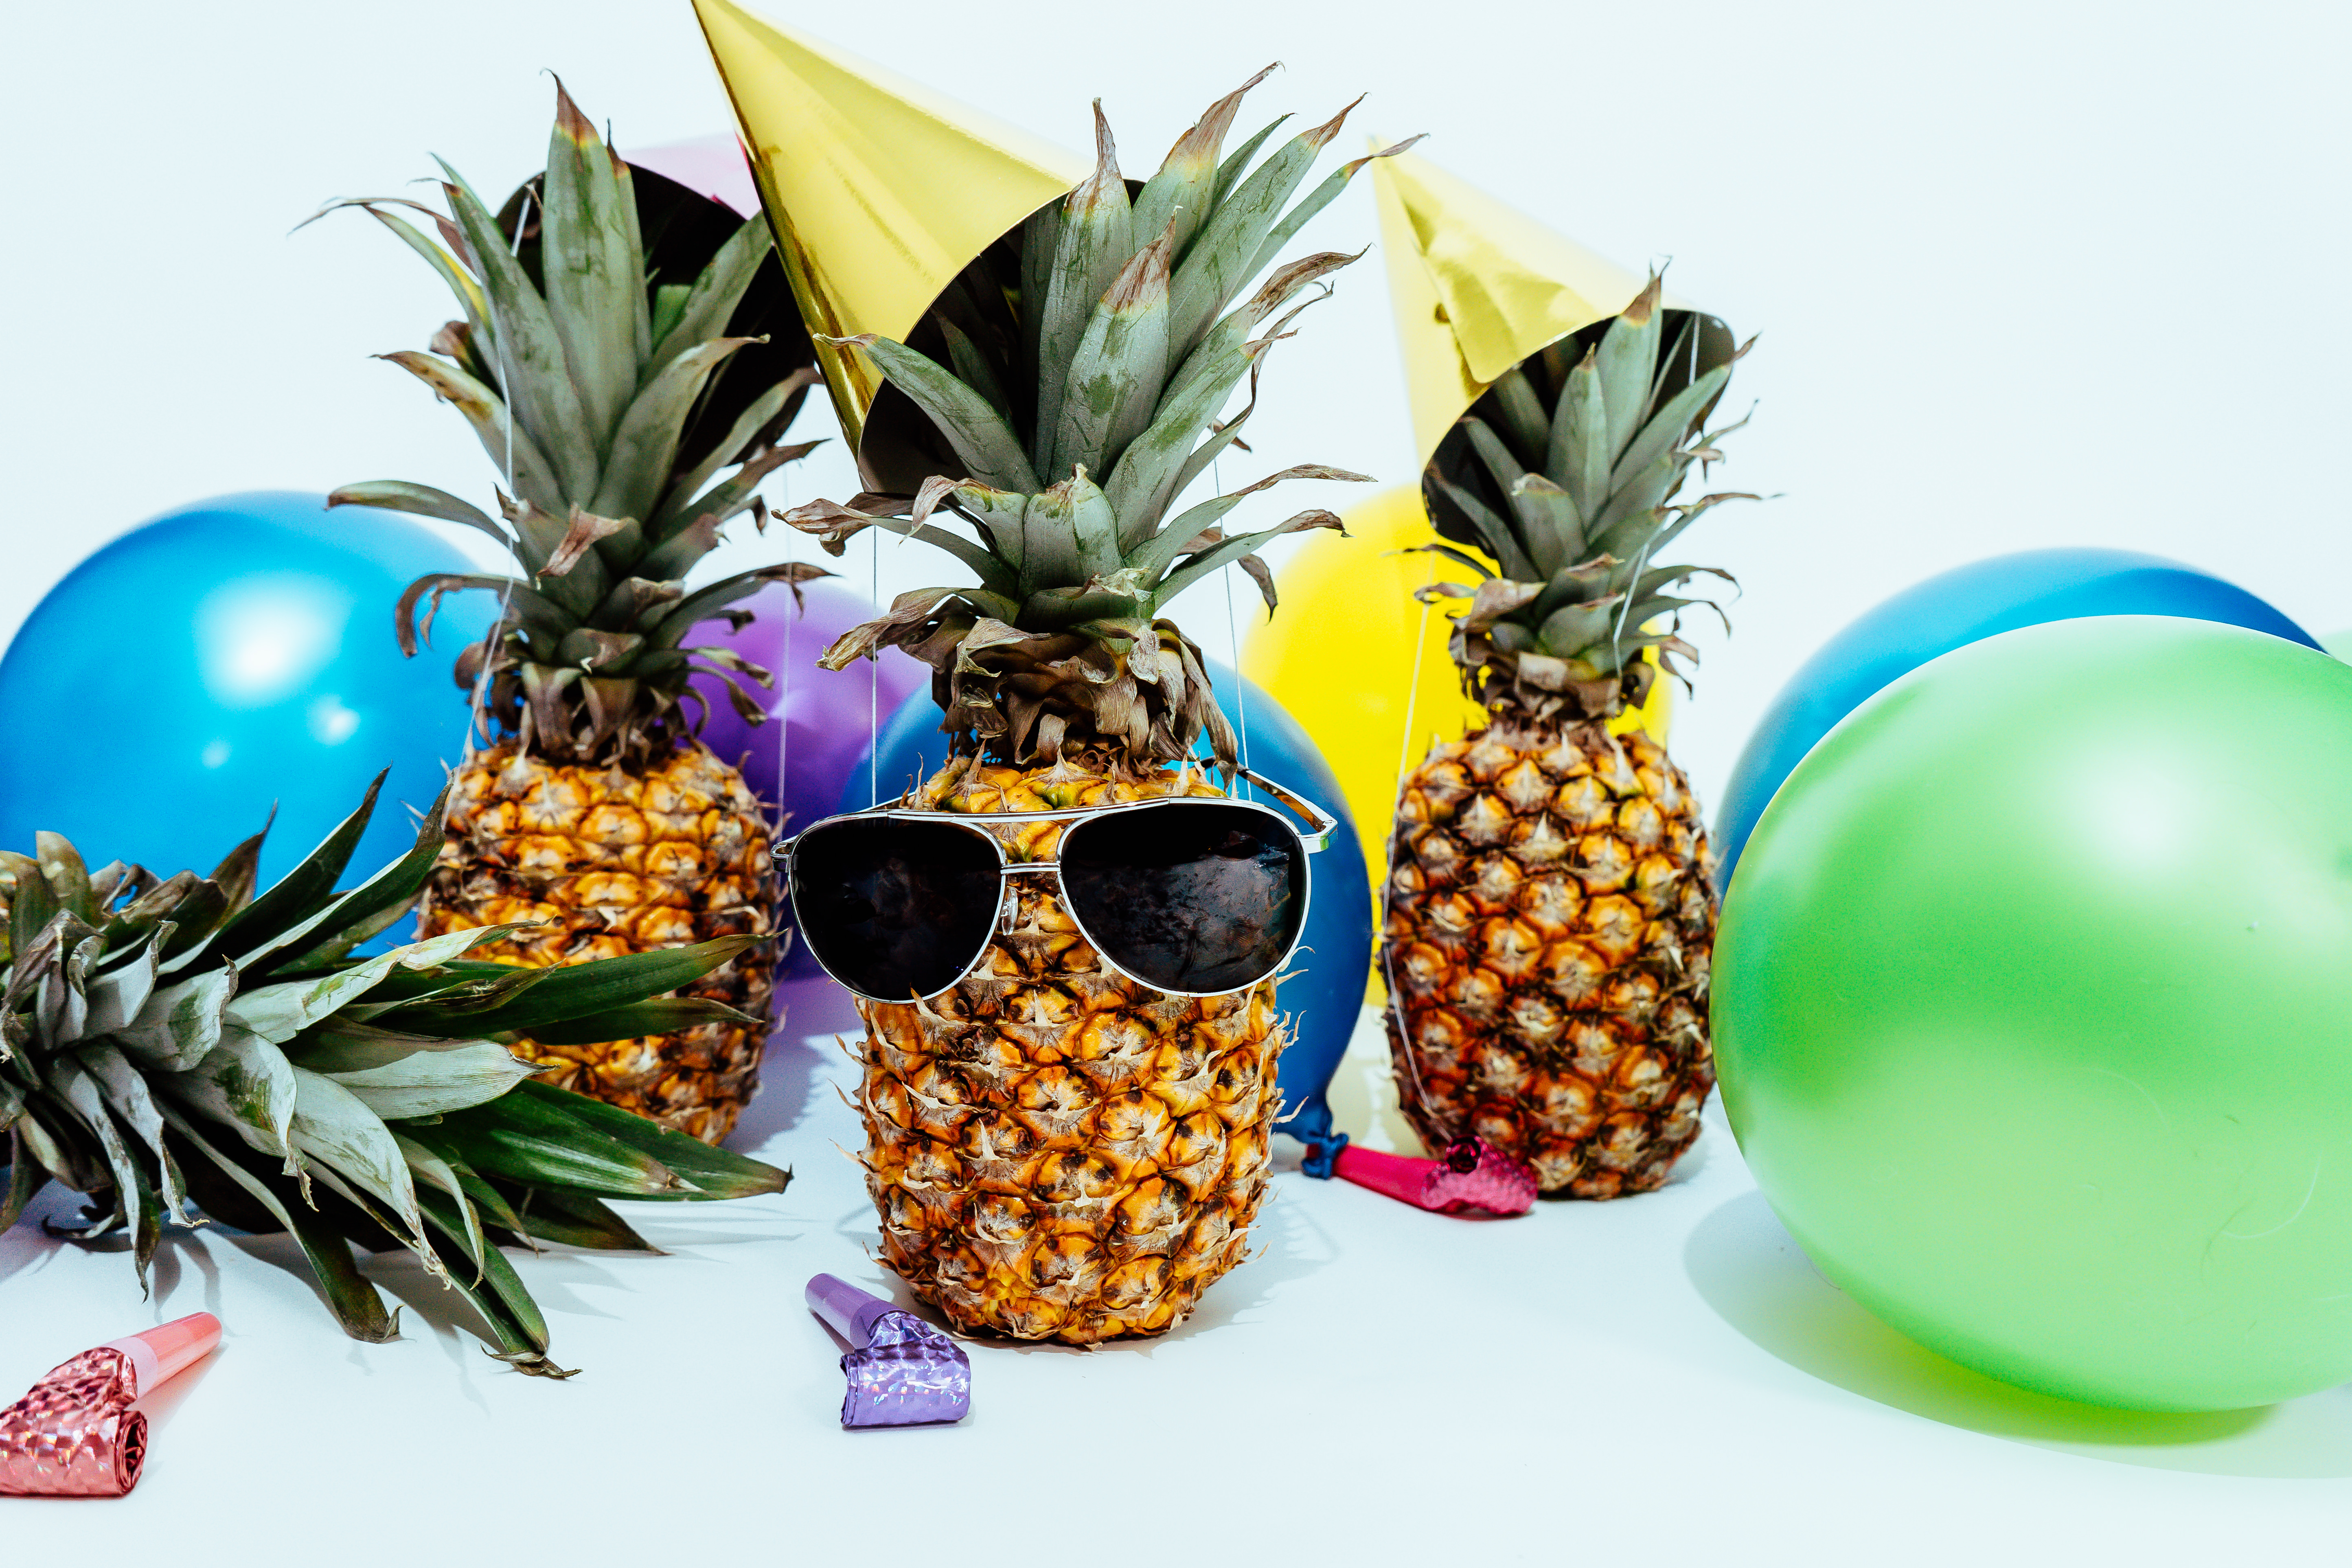 Let's get the pineapple party started.